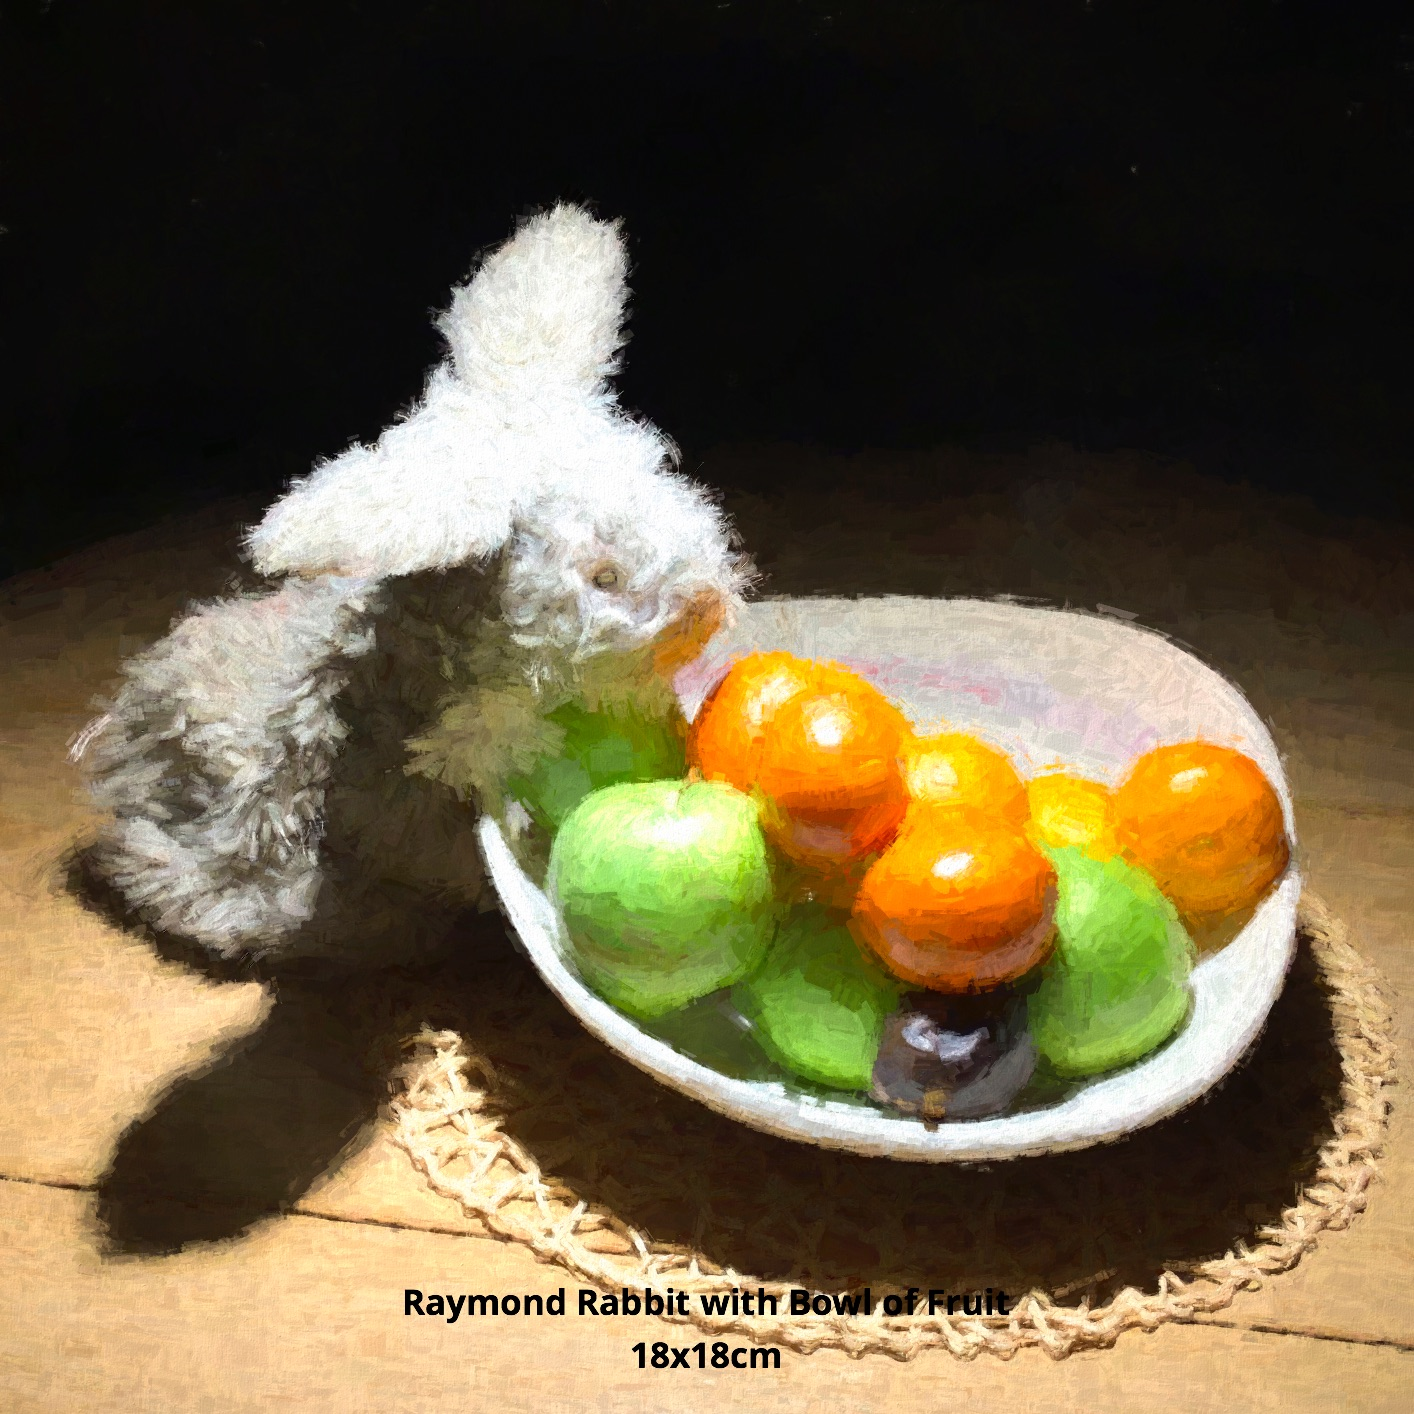 Raymond Rabbit with Bowl of Fruit